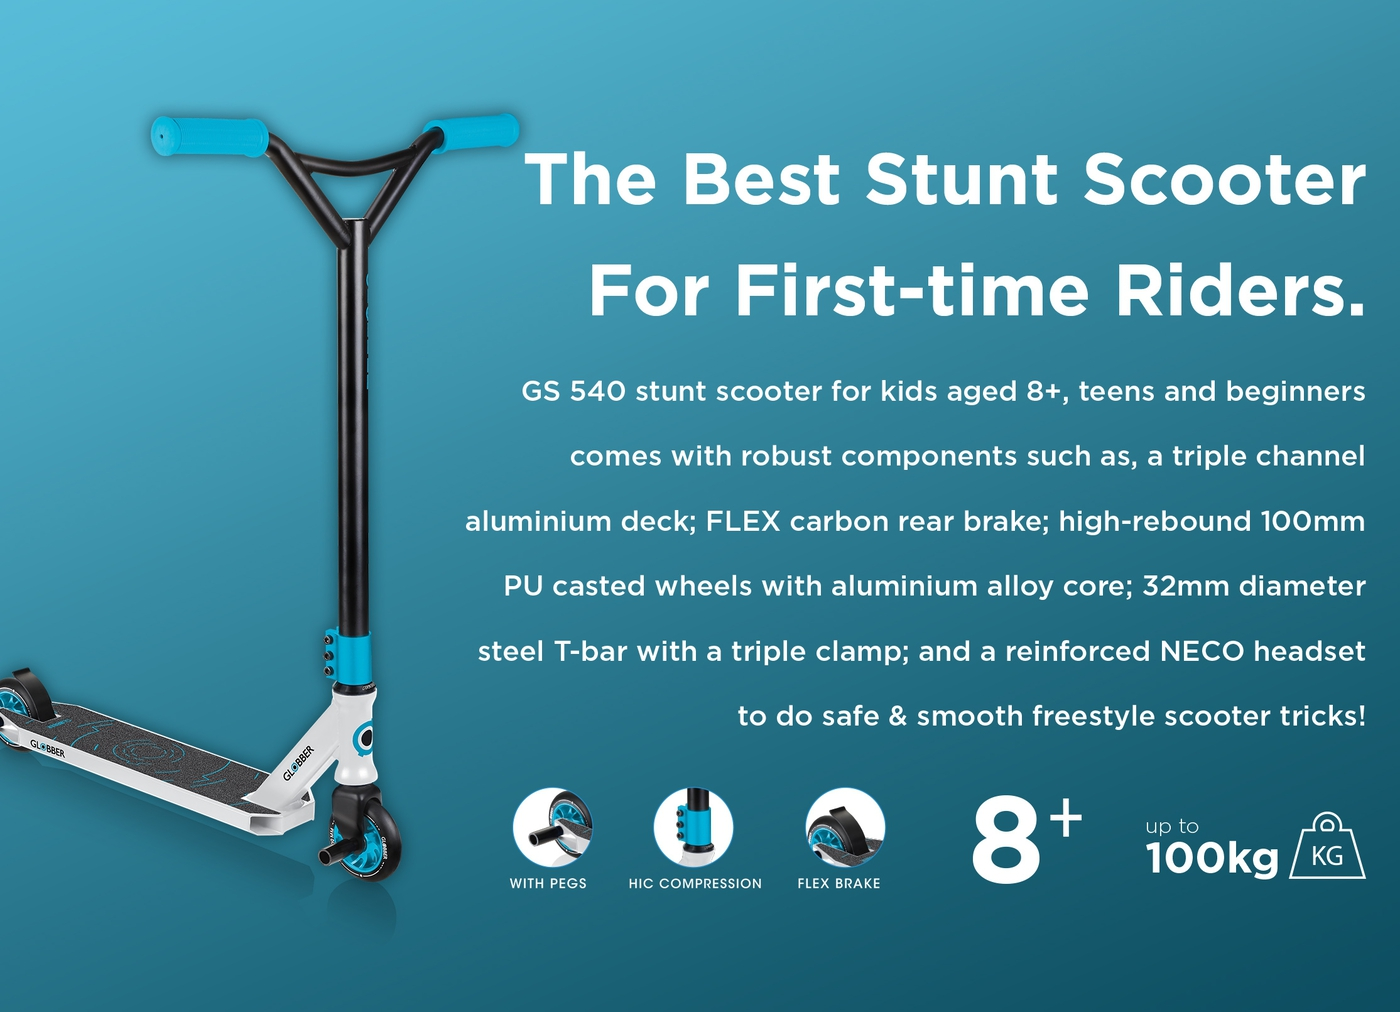 Best stunt scooters for first-time riders.